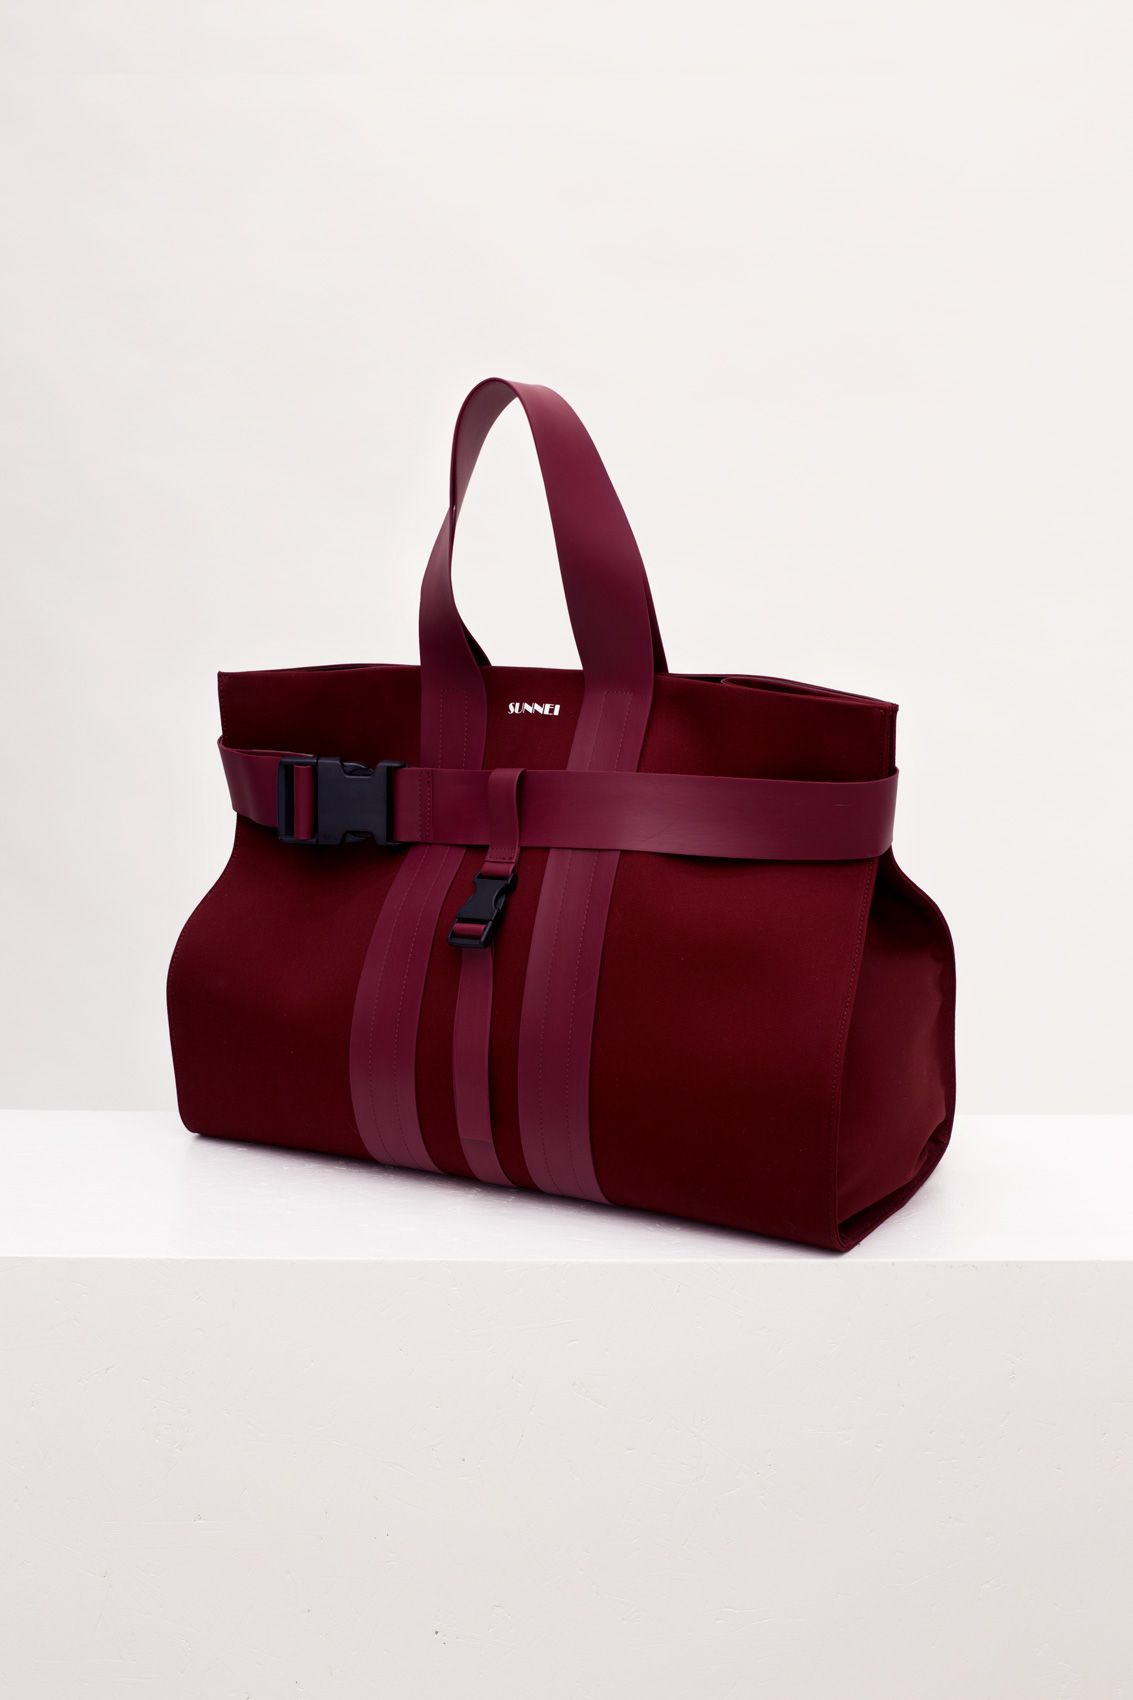 c9b3748762c Bordeaux messenger bag in 2019 | Product ideas | Bags, Gym bag, Fashion